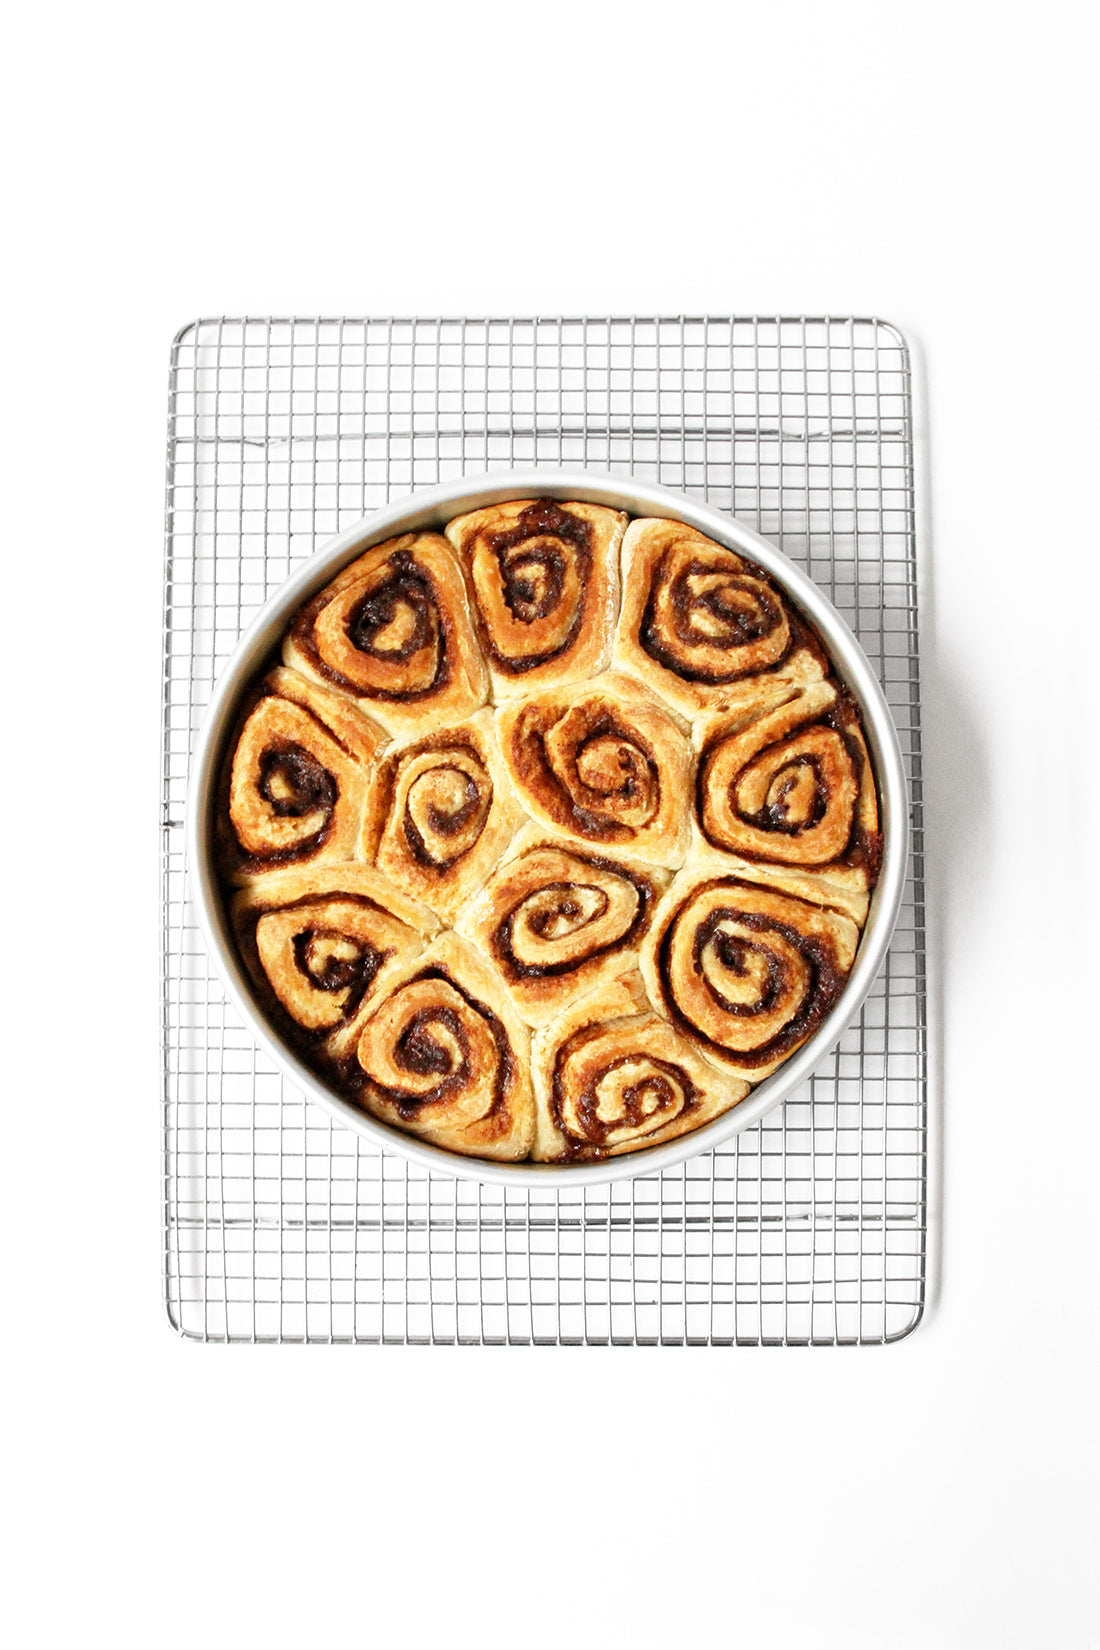 Image from above of a circular pan with twelve Miss Jones Baking Co Cake Mix Cinnamon Rolls